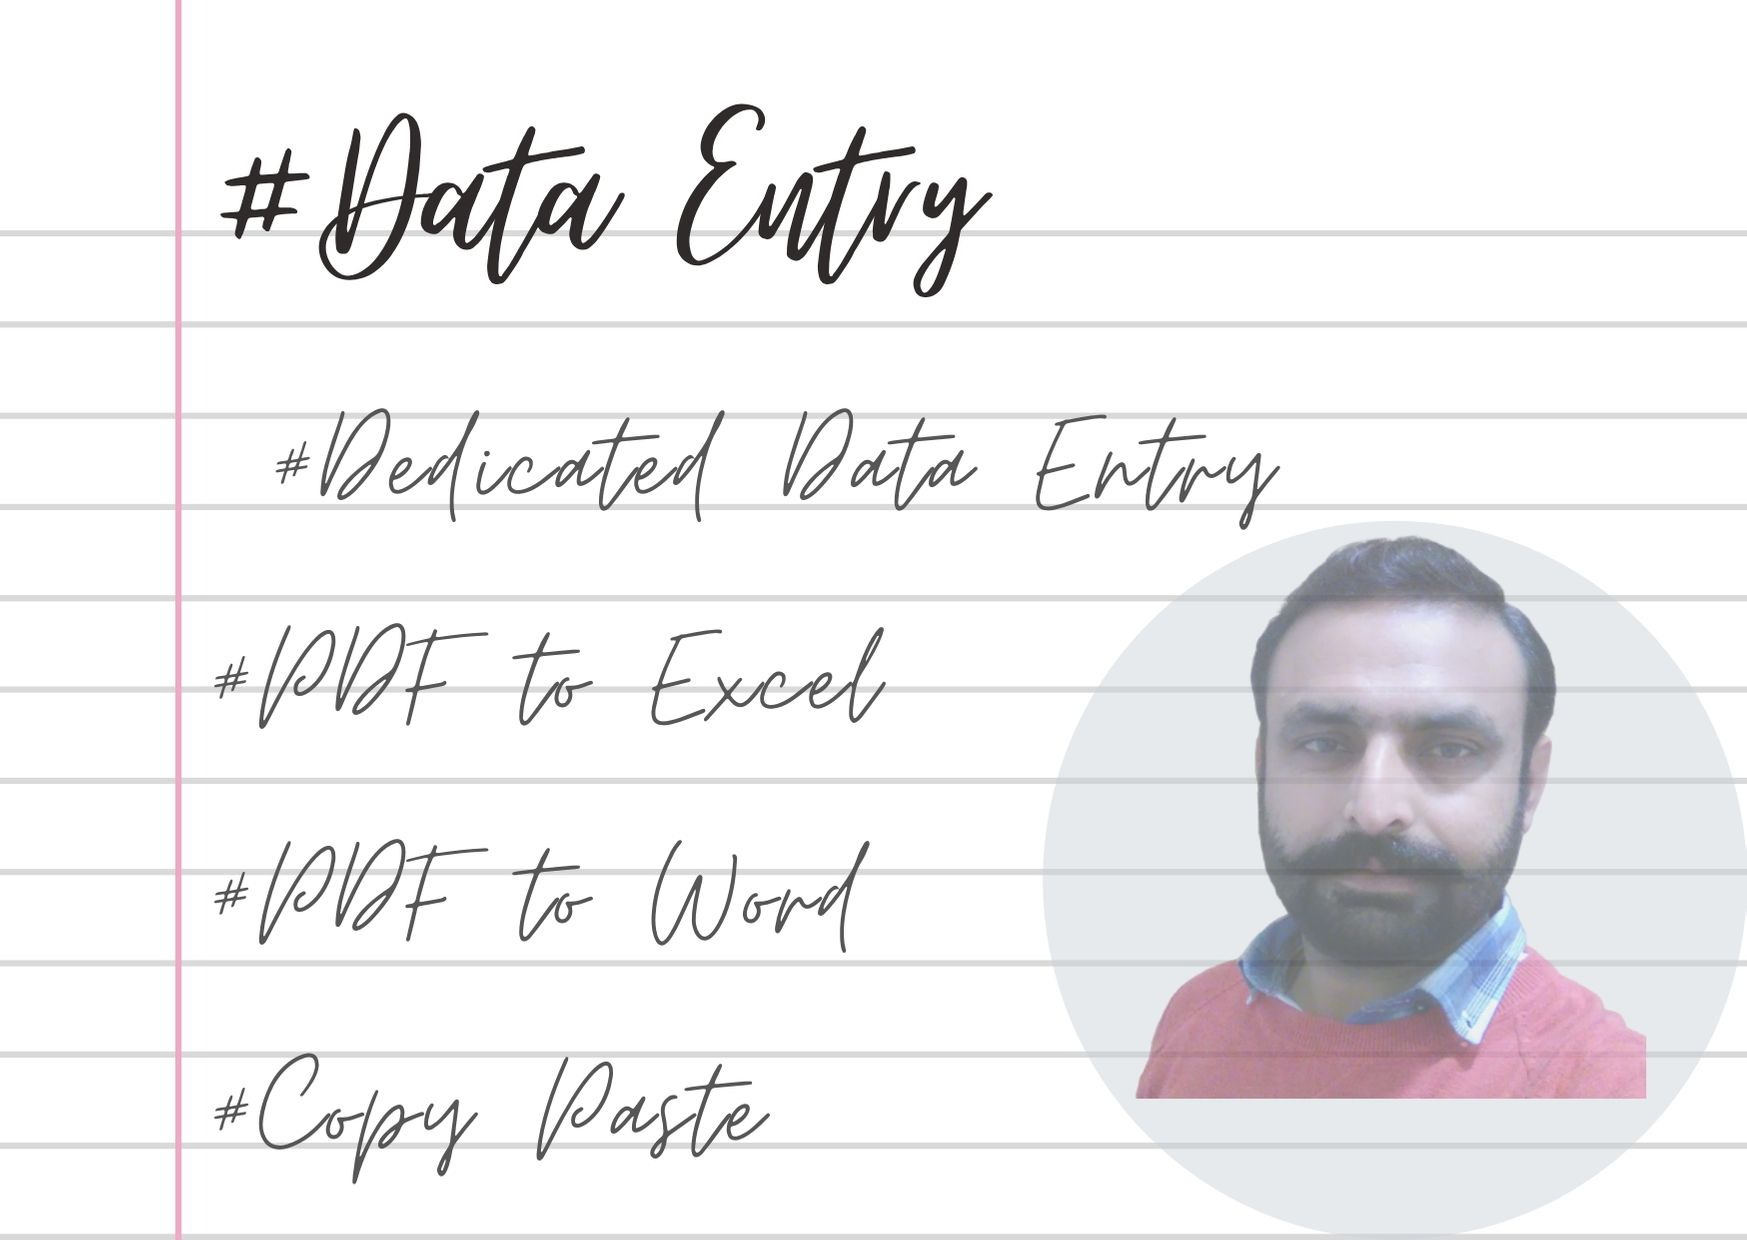 I will provide Dedicated Data Entry Services